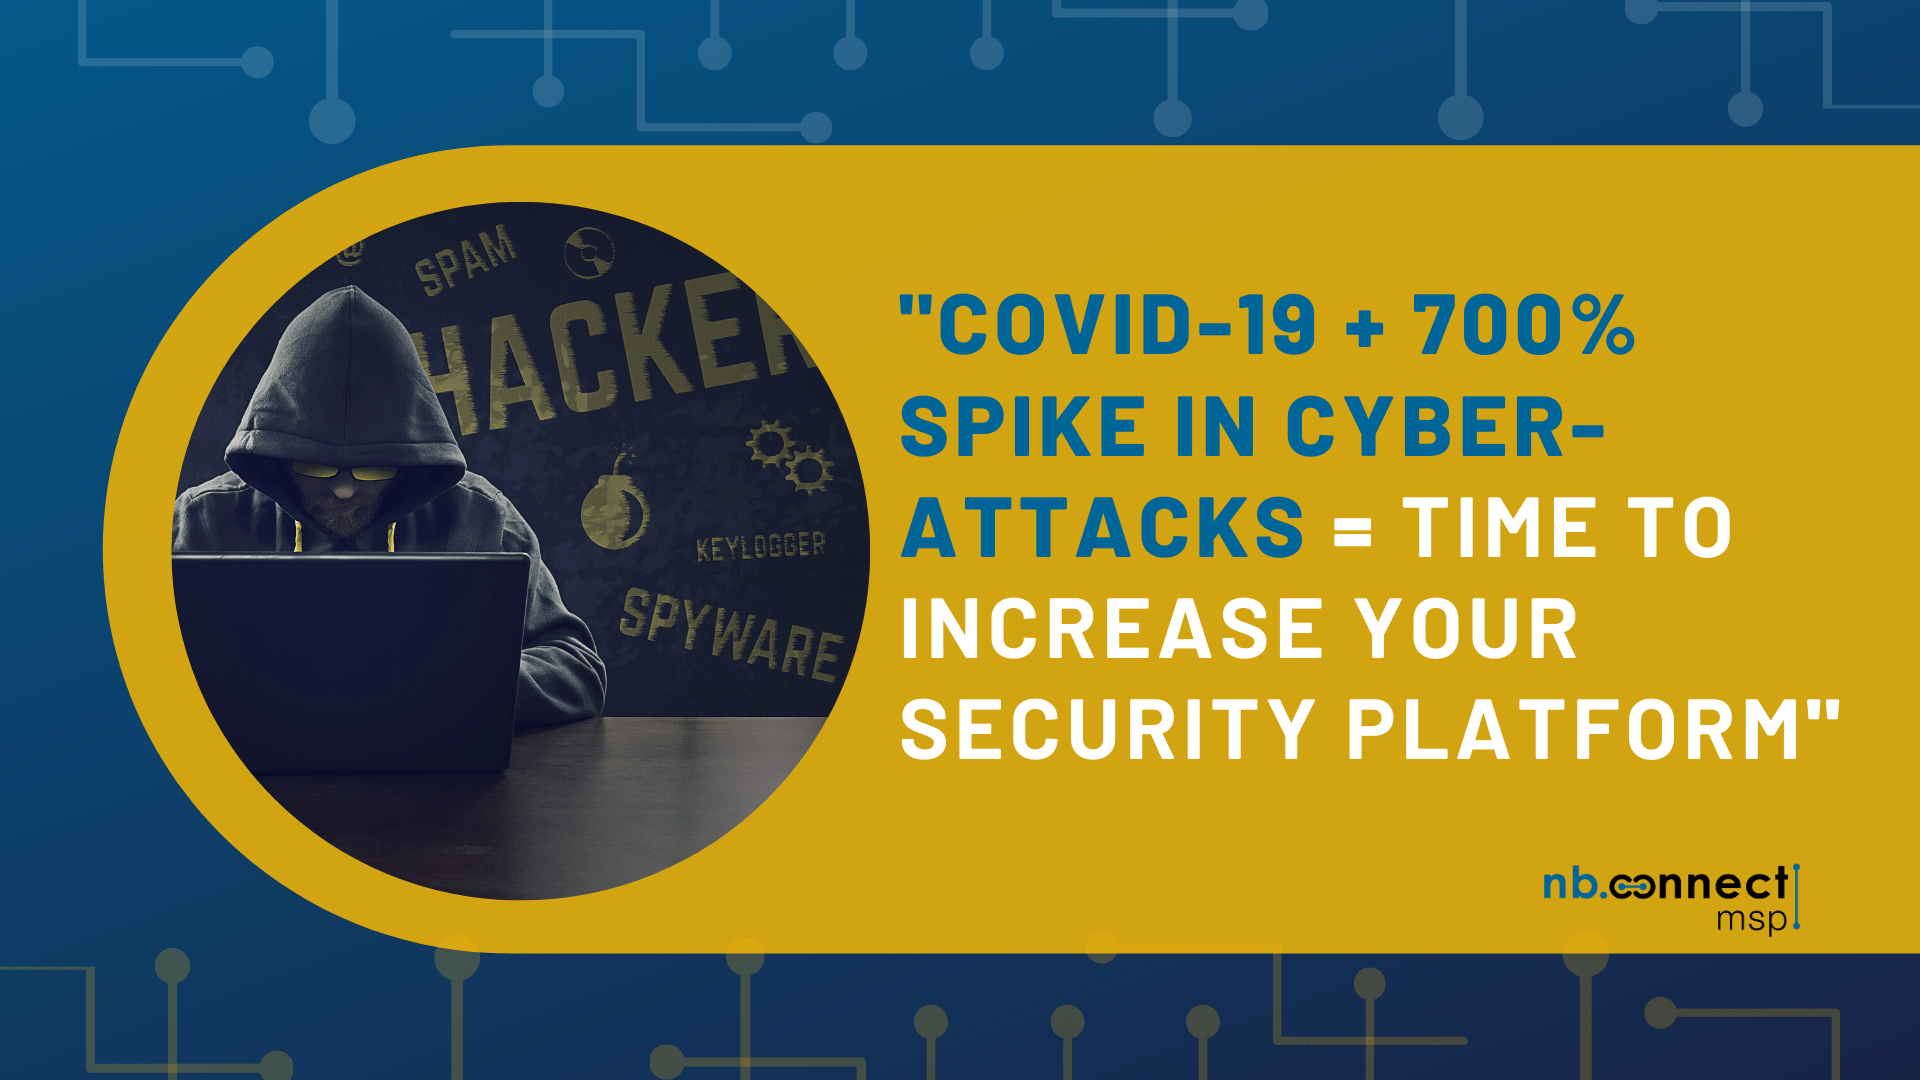 There's Never Been Better Time To Increase Cyber-Security, Than NOW